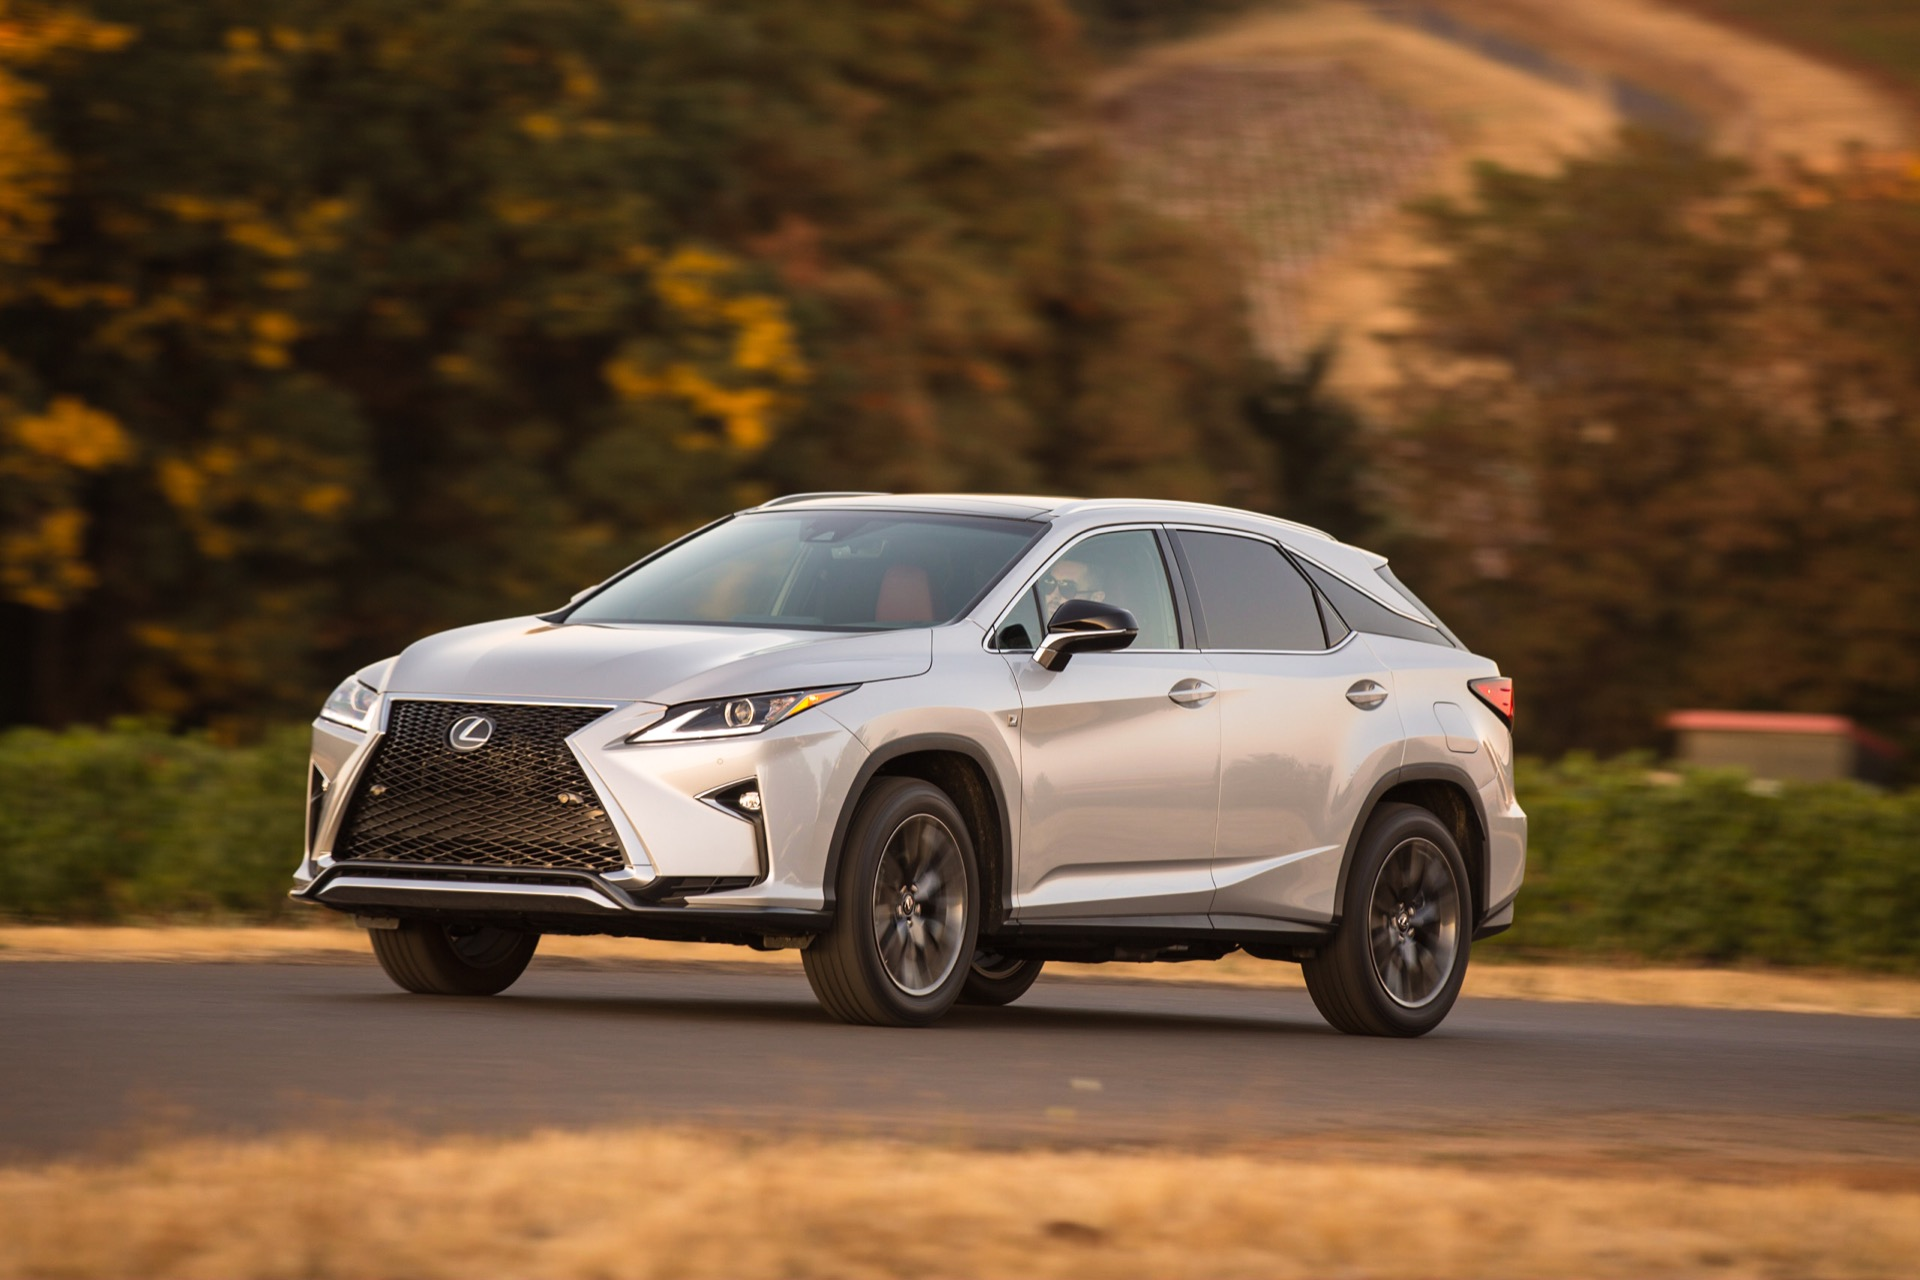 2016 Lexus RX 350 Review, Ratings, Specs, Prices, and ...